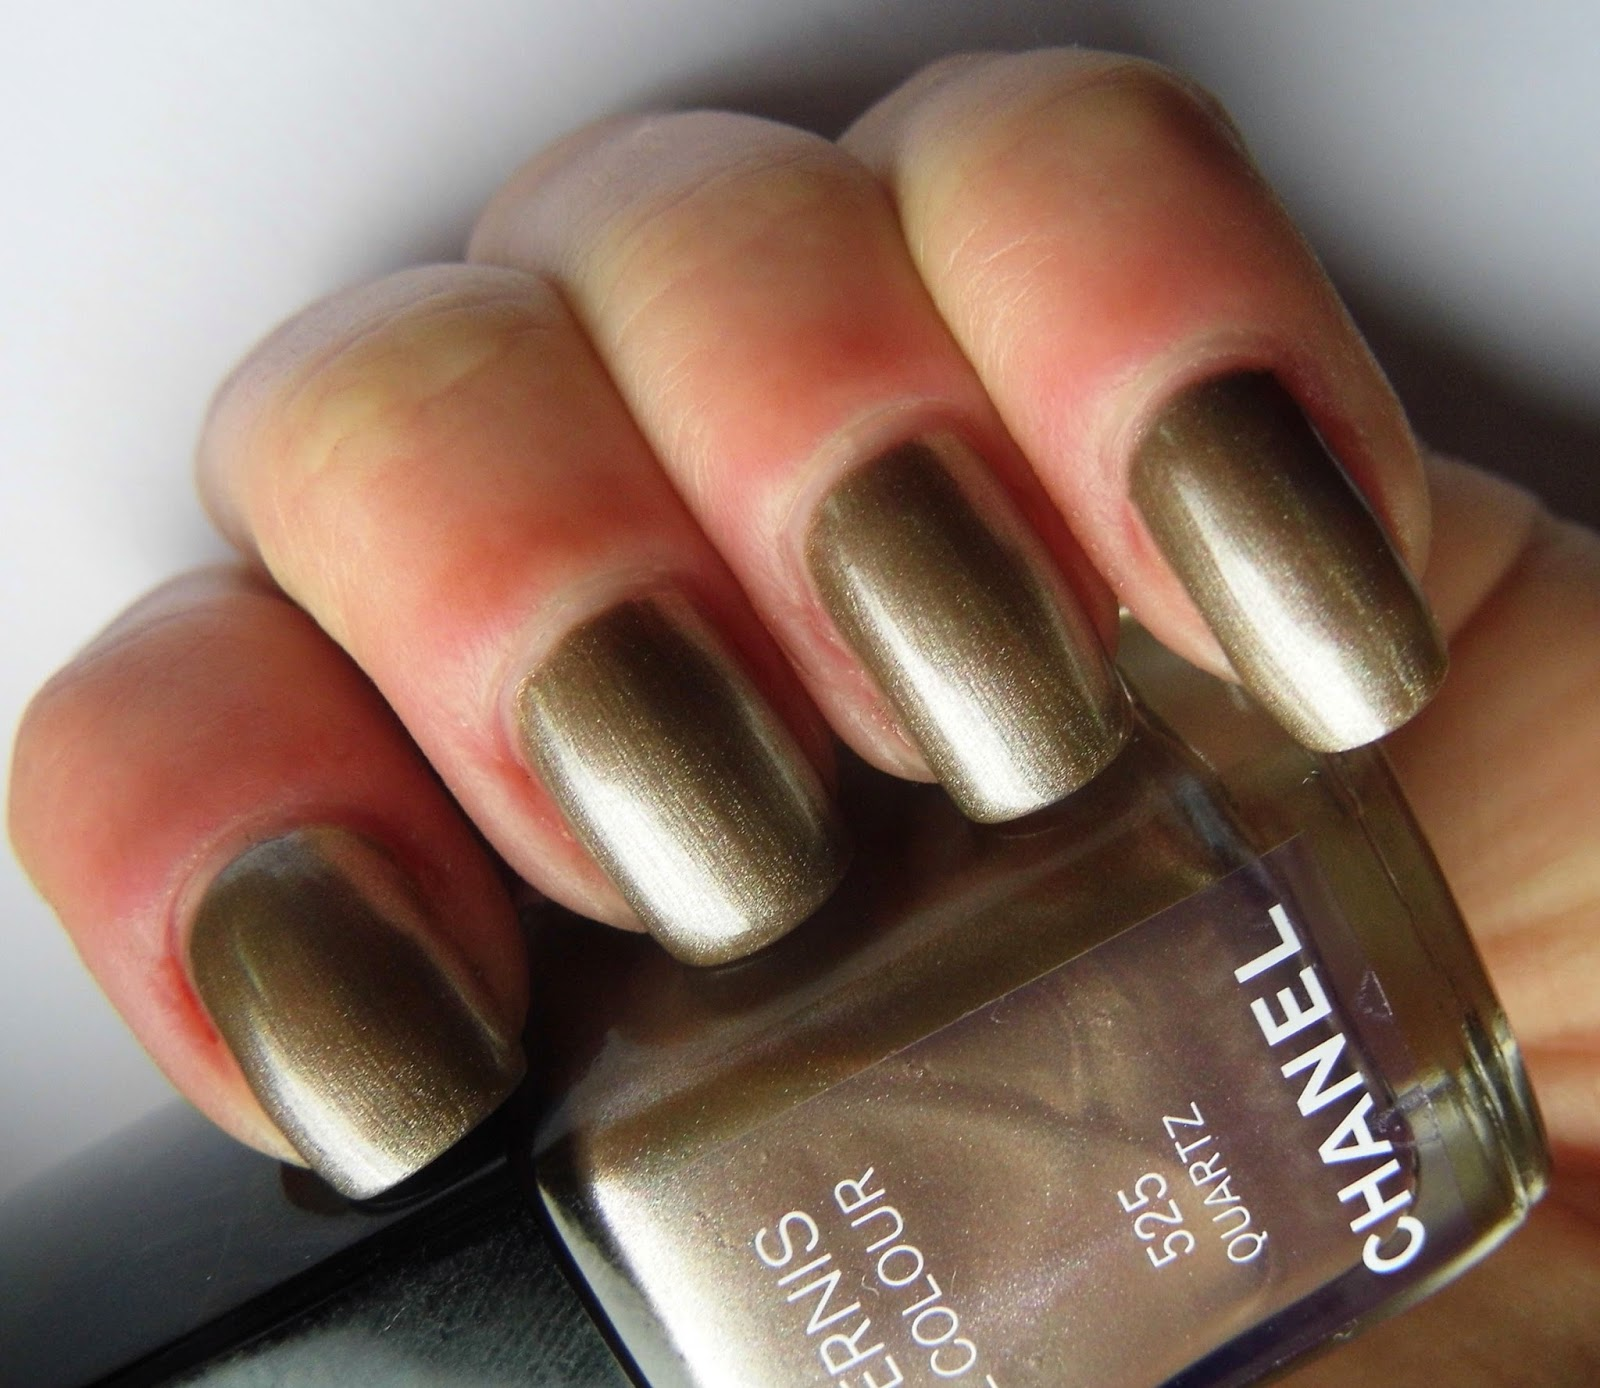 chanel-quartz-nail-polish-swatch-picture